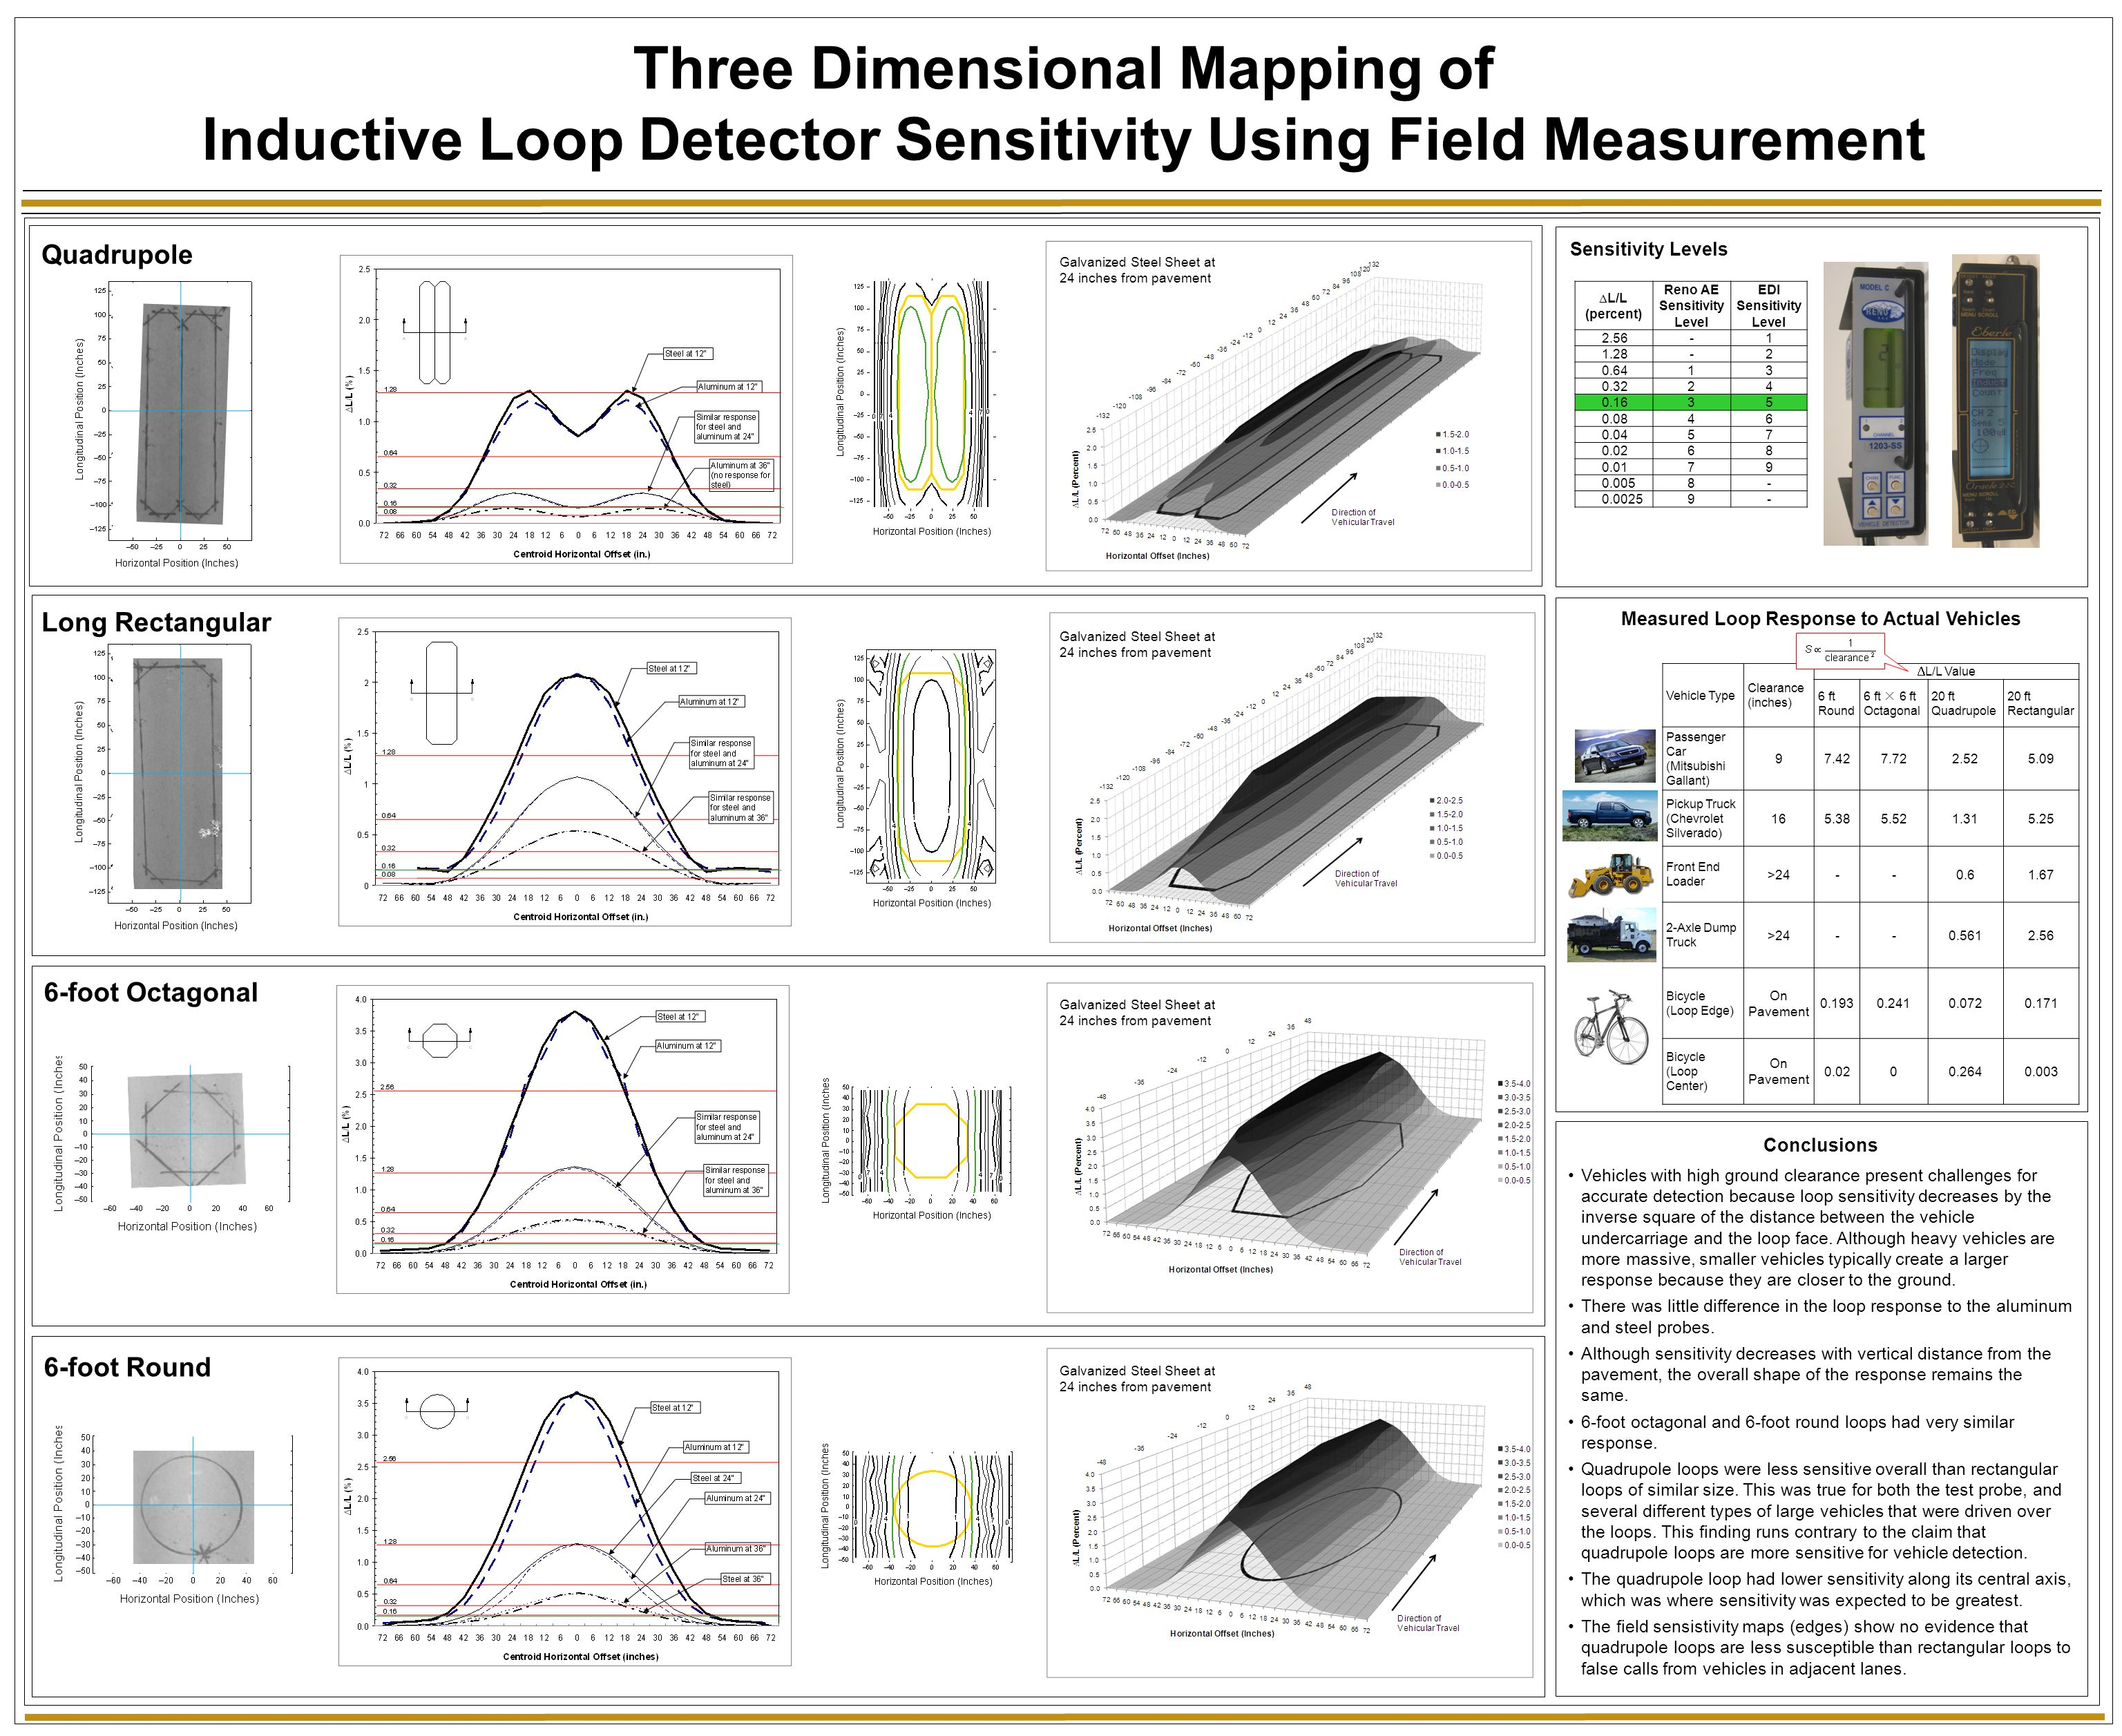 Three Dimensional Mapping of Inductive Loop Detector Sensitivity Using Field Measurement Quadrupole Long Rectangular 6-foot Octagonal 6-foot Round Vehicle Type Clearance (inches)  L/L Value 6 ft Round 6 ft × 6 ft Octagonal 20 ft Quadrupole 20 ft Rectangular Passenger Car (Mitsubishi Gallant) 97.427.722.525.09 Pickup Truck (Chevrolet Silverado) 165.385.521.315.25 Front End Loader >24--0.61.67 2-Axle Dump Truck >24--0.5612.56 Bicycle (Loop Edge) On Pavement 0.1930.2410.0720.171 Bicycle (Loop Center) On Pavement 0.0200.2640.003 ∆ L/L (percent) Reno AE Sensitivity Level EDI Sensitivity Level 2.56-1 1.28-2 0.6413 0.3224 0.1635 0.0846 0.0457 0.0268 0.0179 0.0058- 0.00259- Sensitivity Levels Measured Loop Response to Actual Vehicles Conclusions Vehicles with high ground clearance present challenges for accurate detection because loop sensitivity decreases by the inverse square of the distance between the vehicle undercarriage and the loop face.